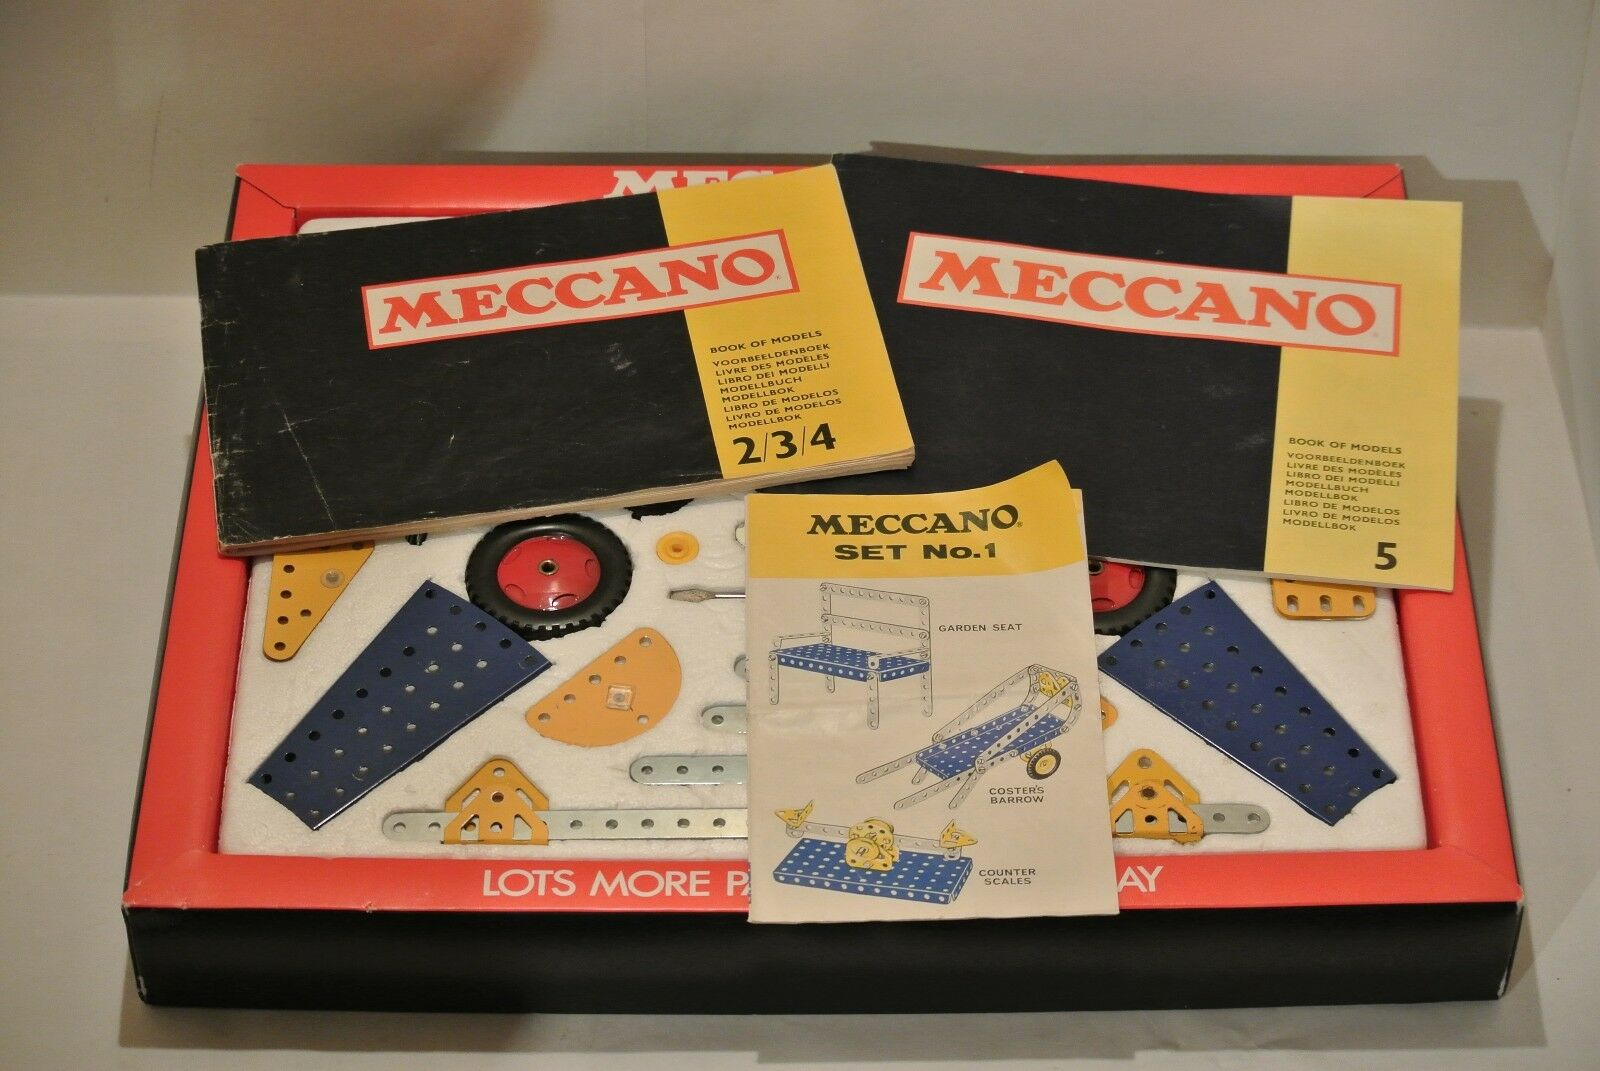 Meccano Set 5 COMPLETE SUPERB Cond bluee Yellow 1970's. Manual 2-4,5  Parts 395